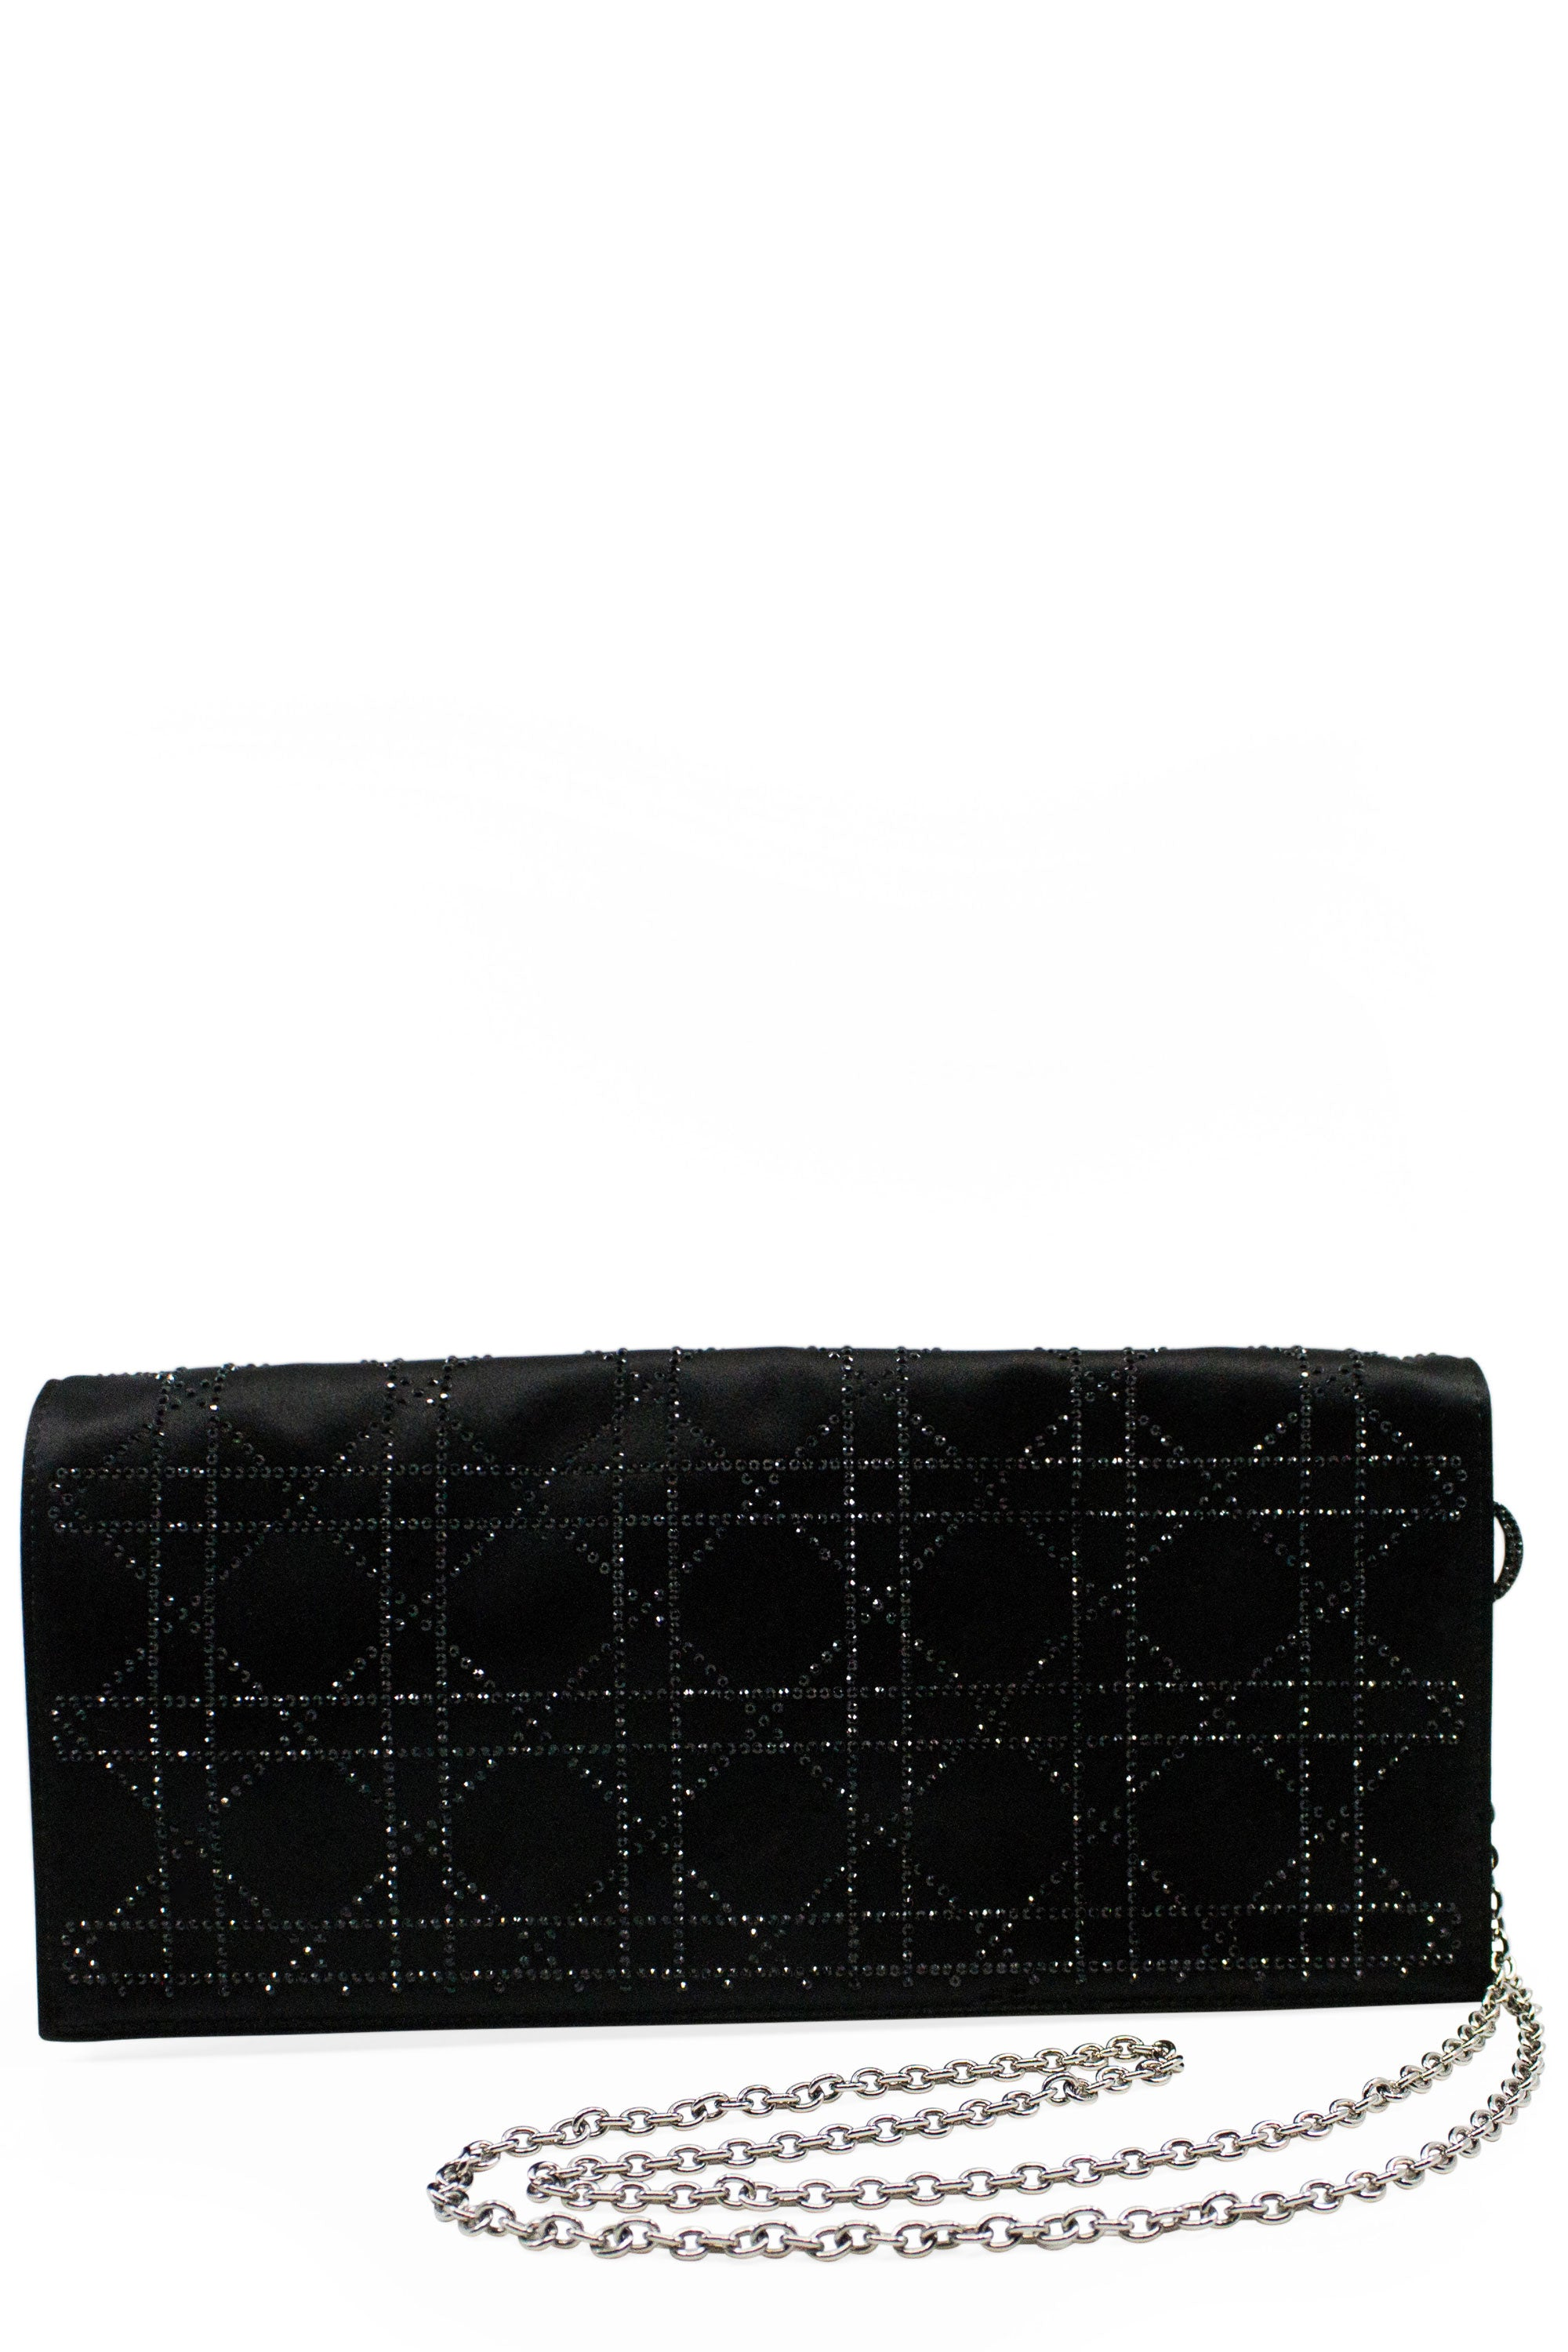 CHRISTIAN DIOR Cannage Satin Crystal Evening Clutch Frontansicht